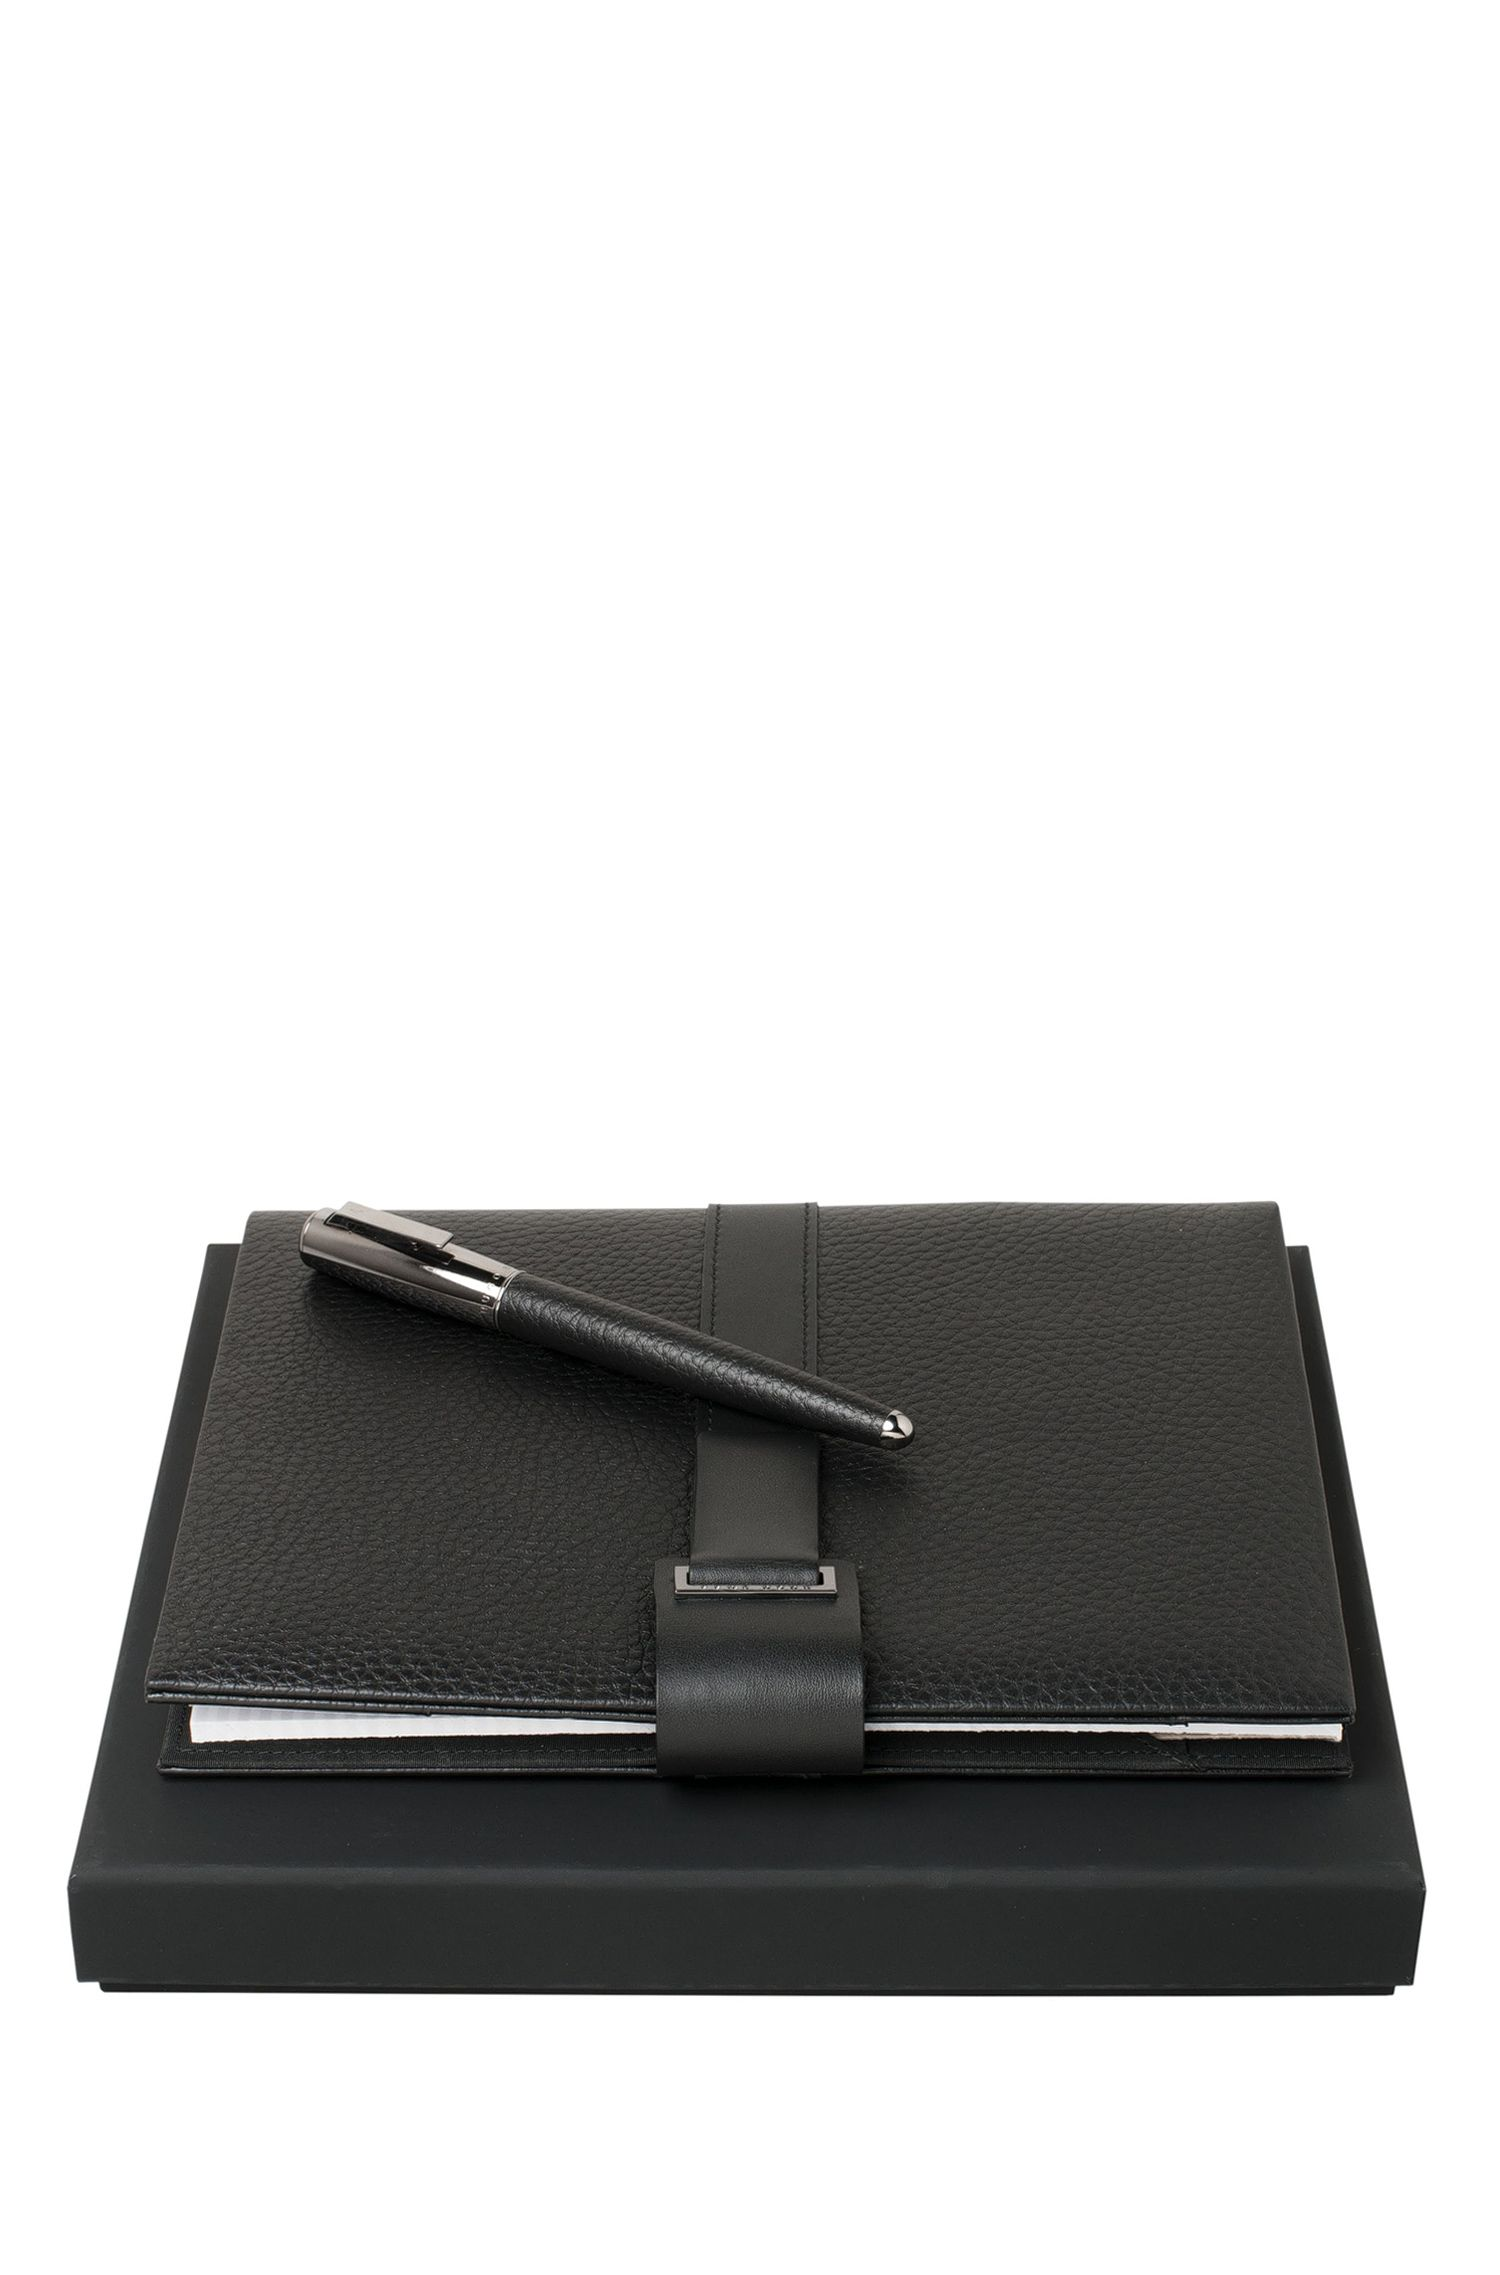 Pure Rollerball Pen & Folder Set | HPMR604A